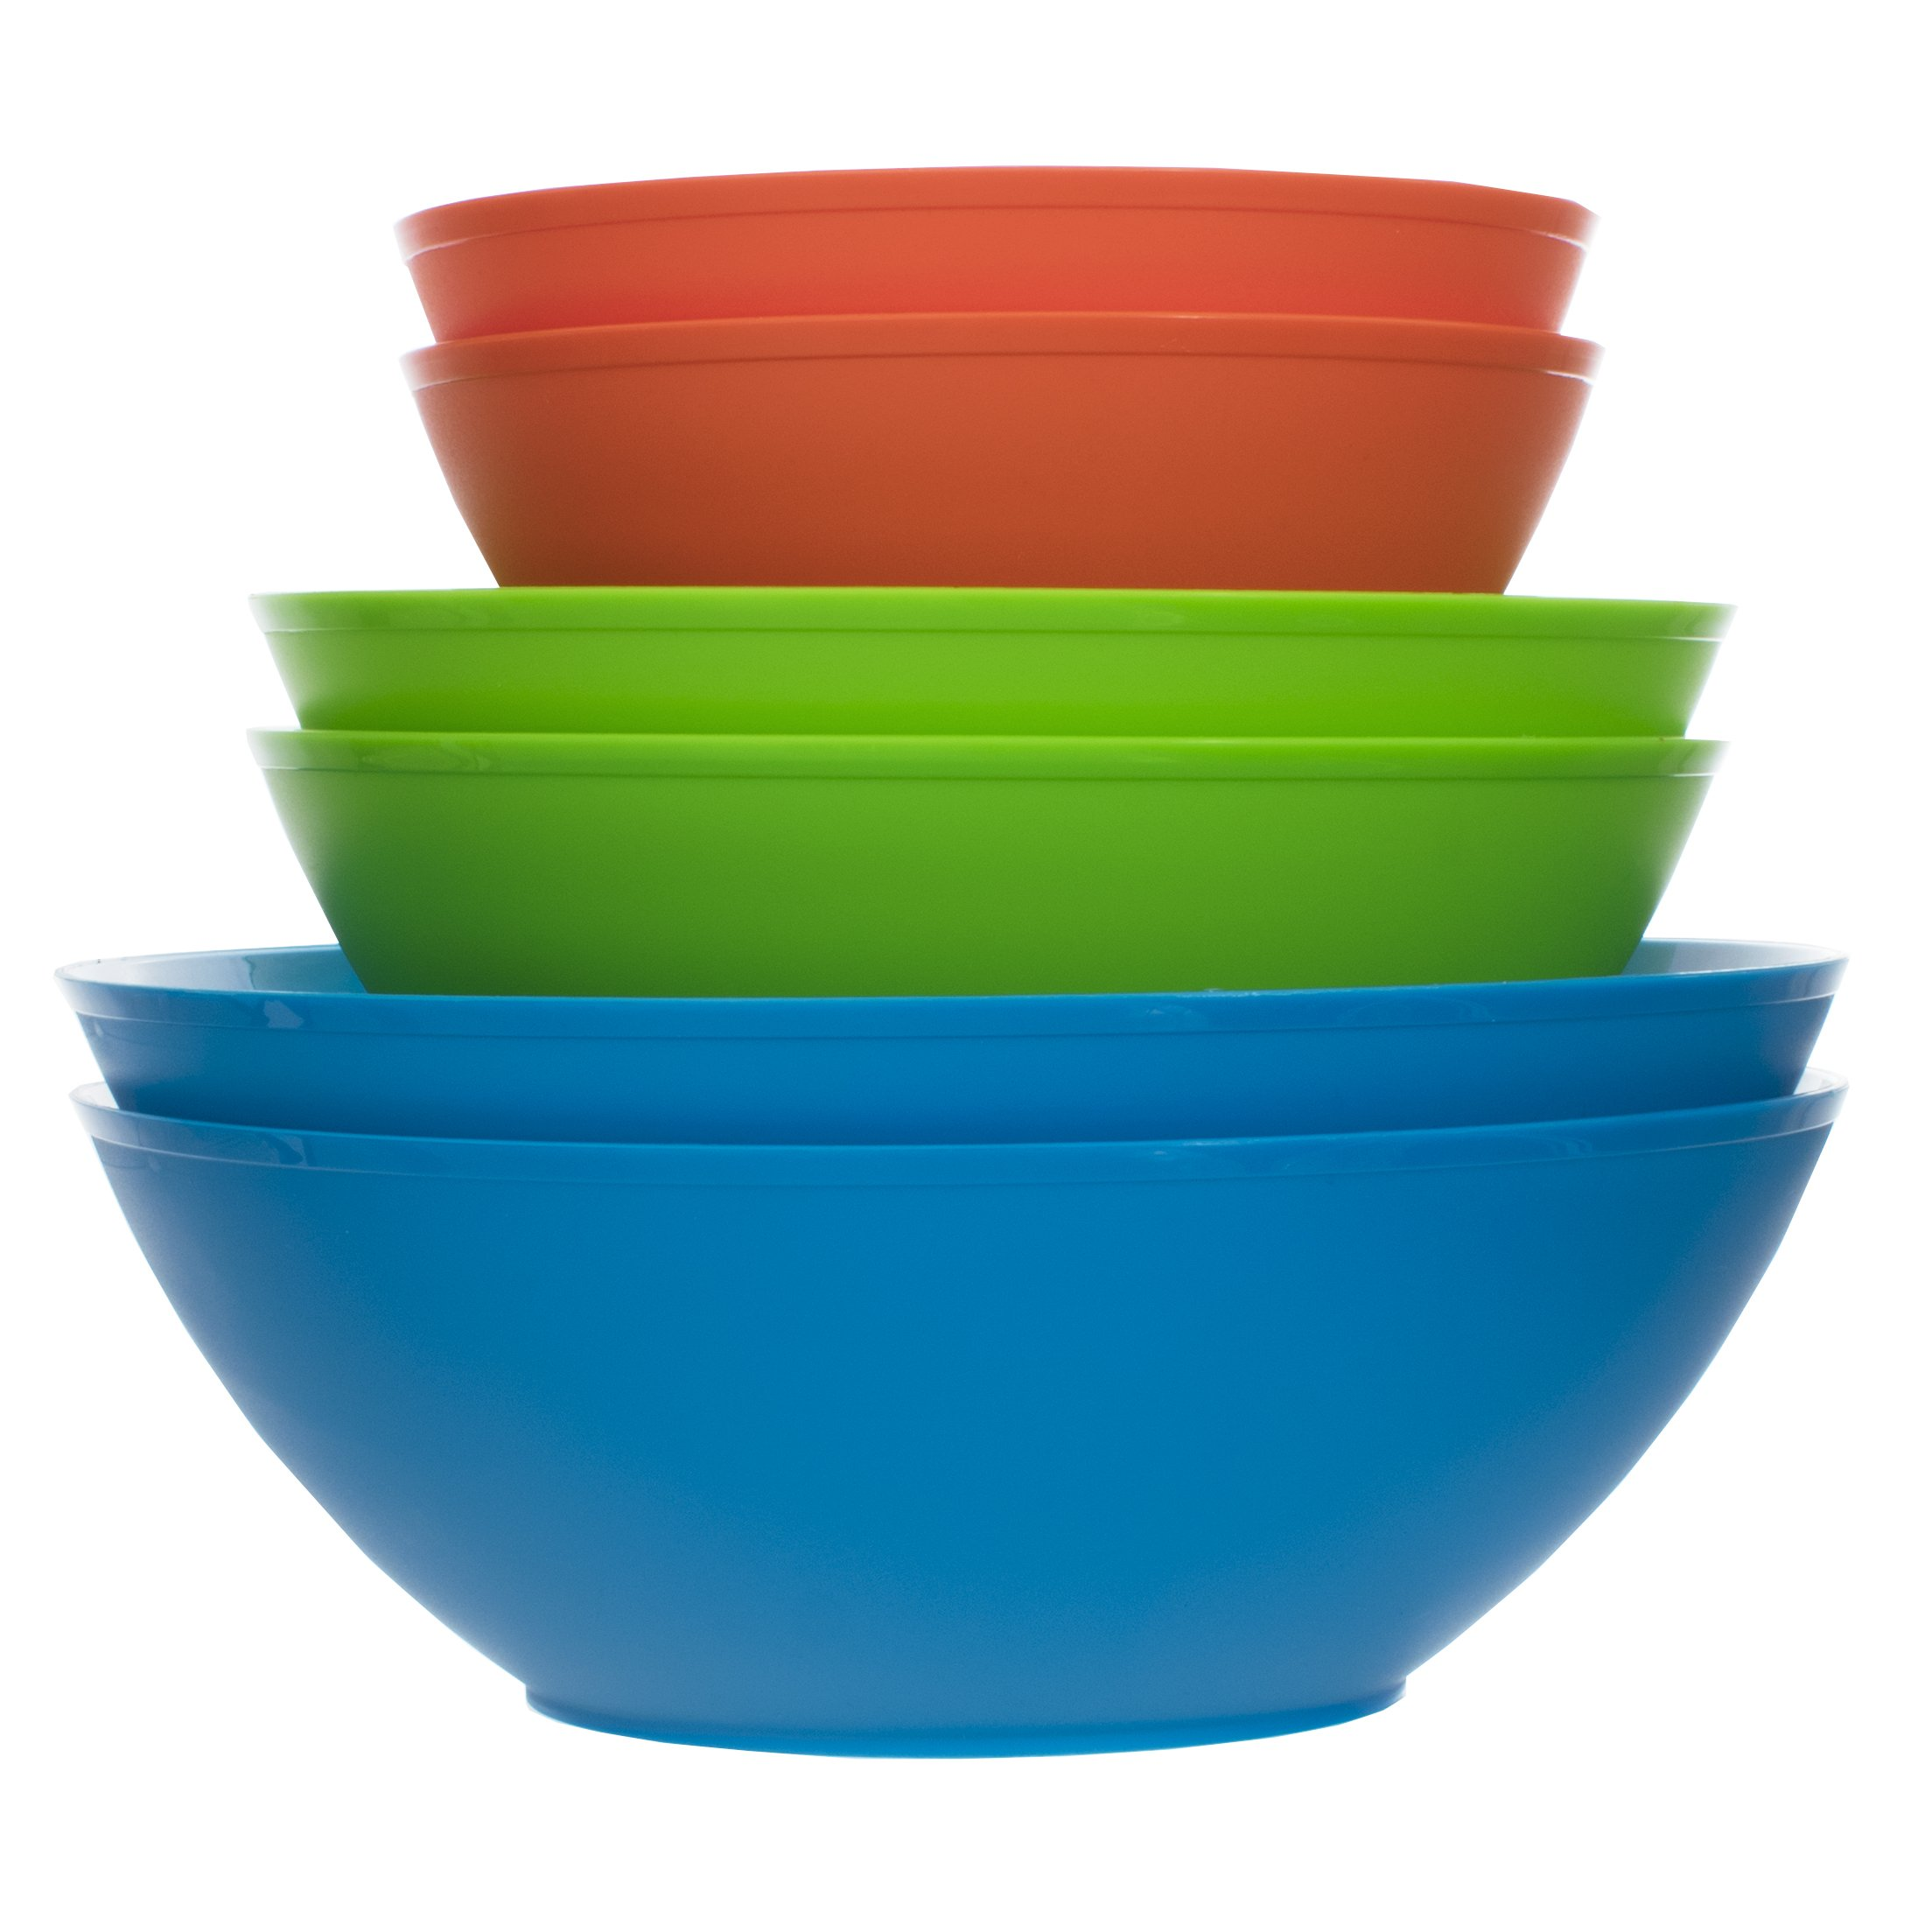 Fresco Plastic Mixing and Serving Bowls | 12-inch 10-inch 8-inch | 6-piece set in 3 Classic Colors